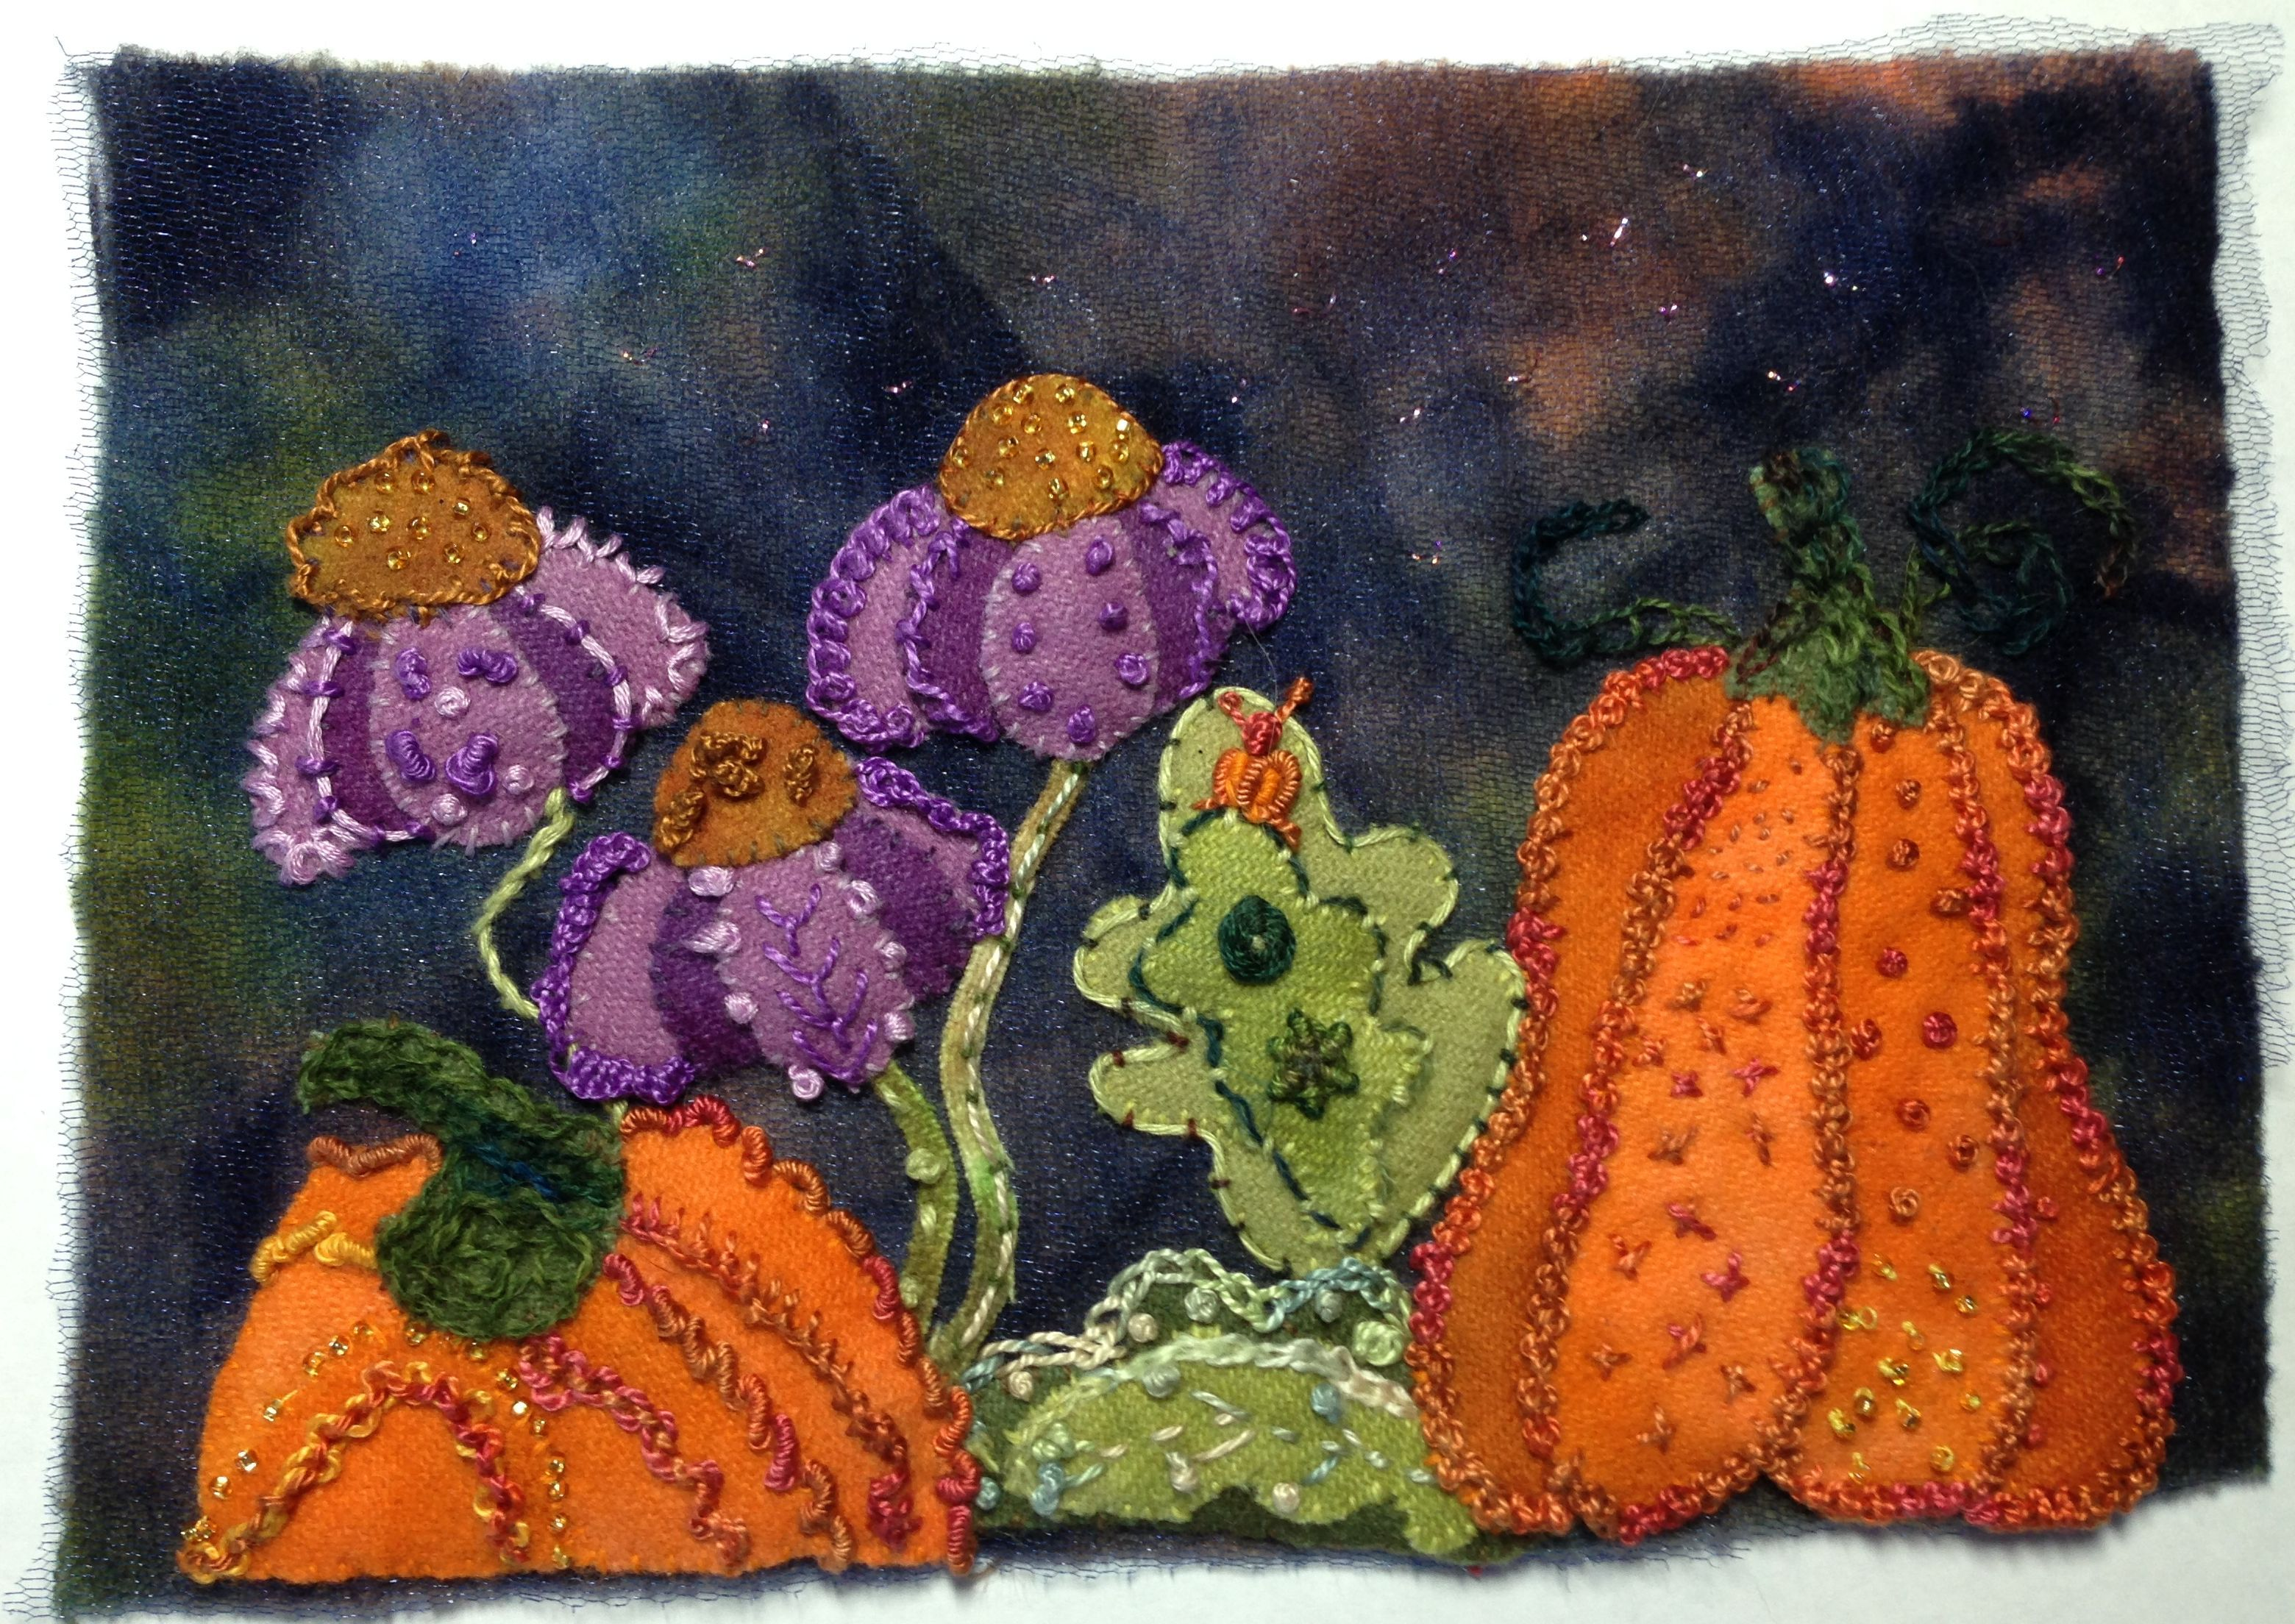 Wool Applique' – a new art for me!